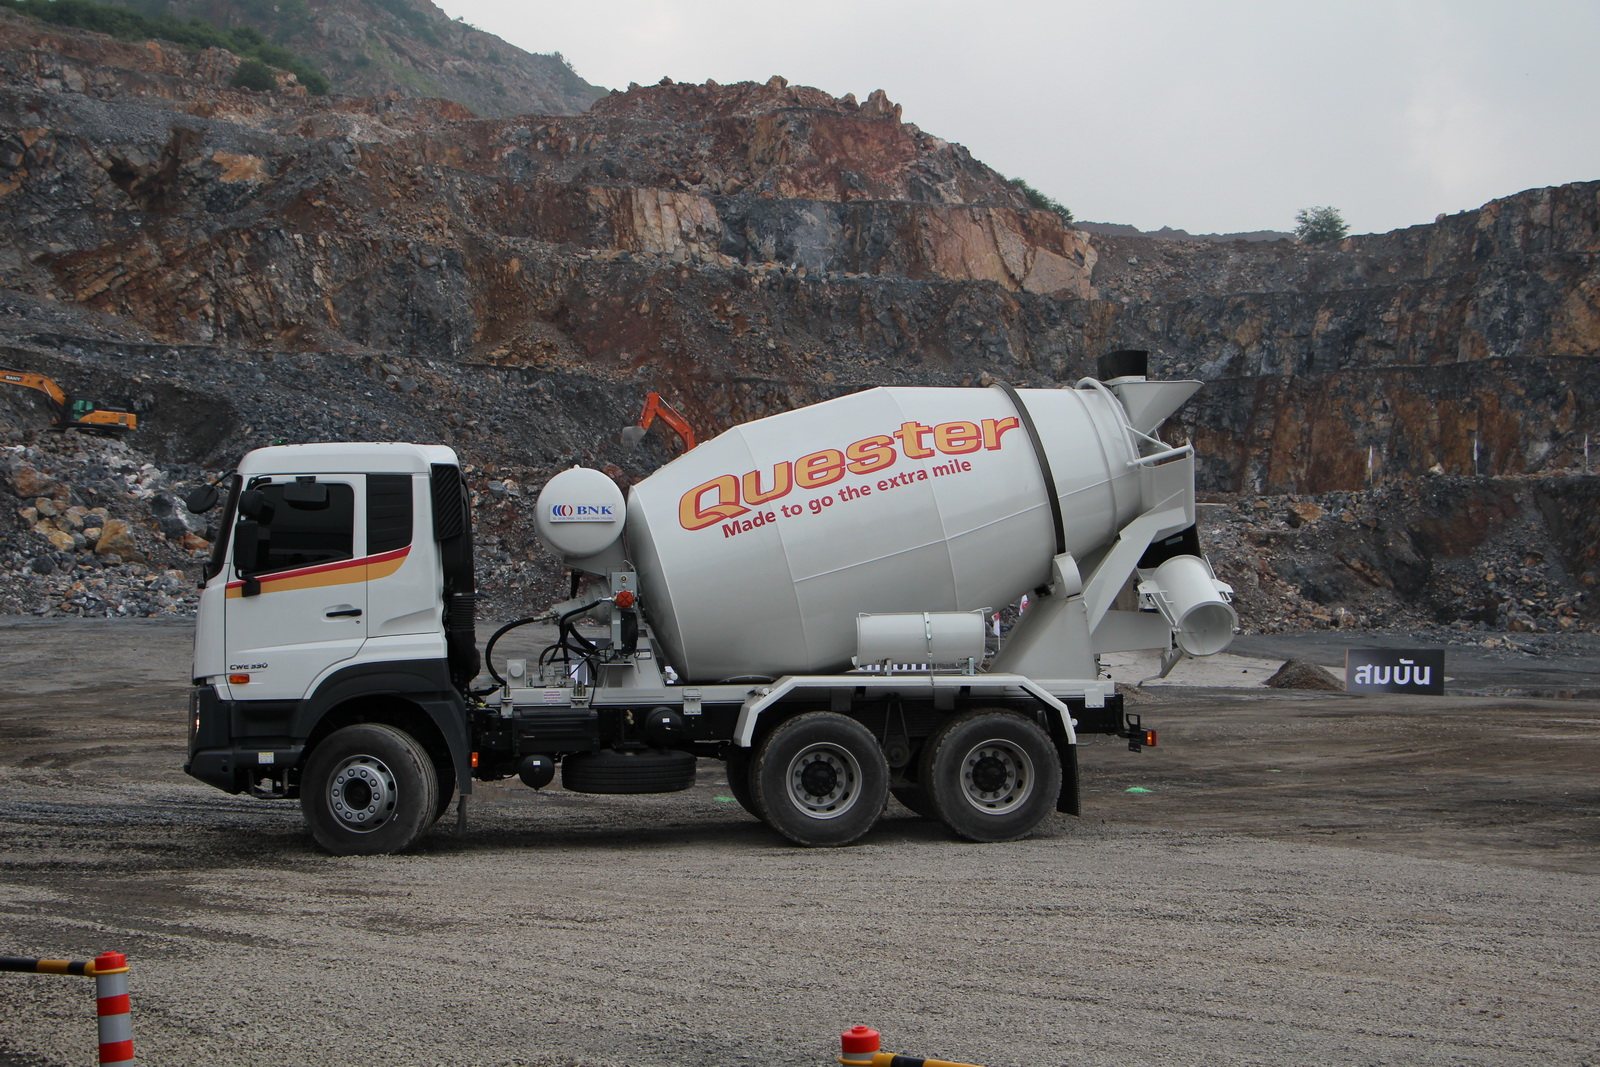 ud_truck_quester_06